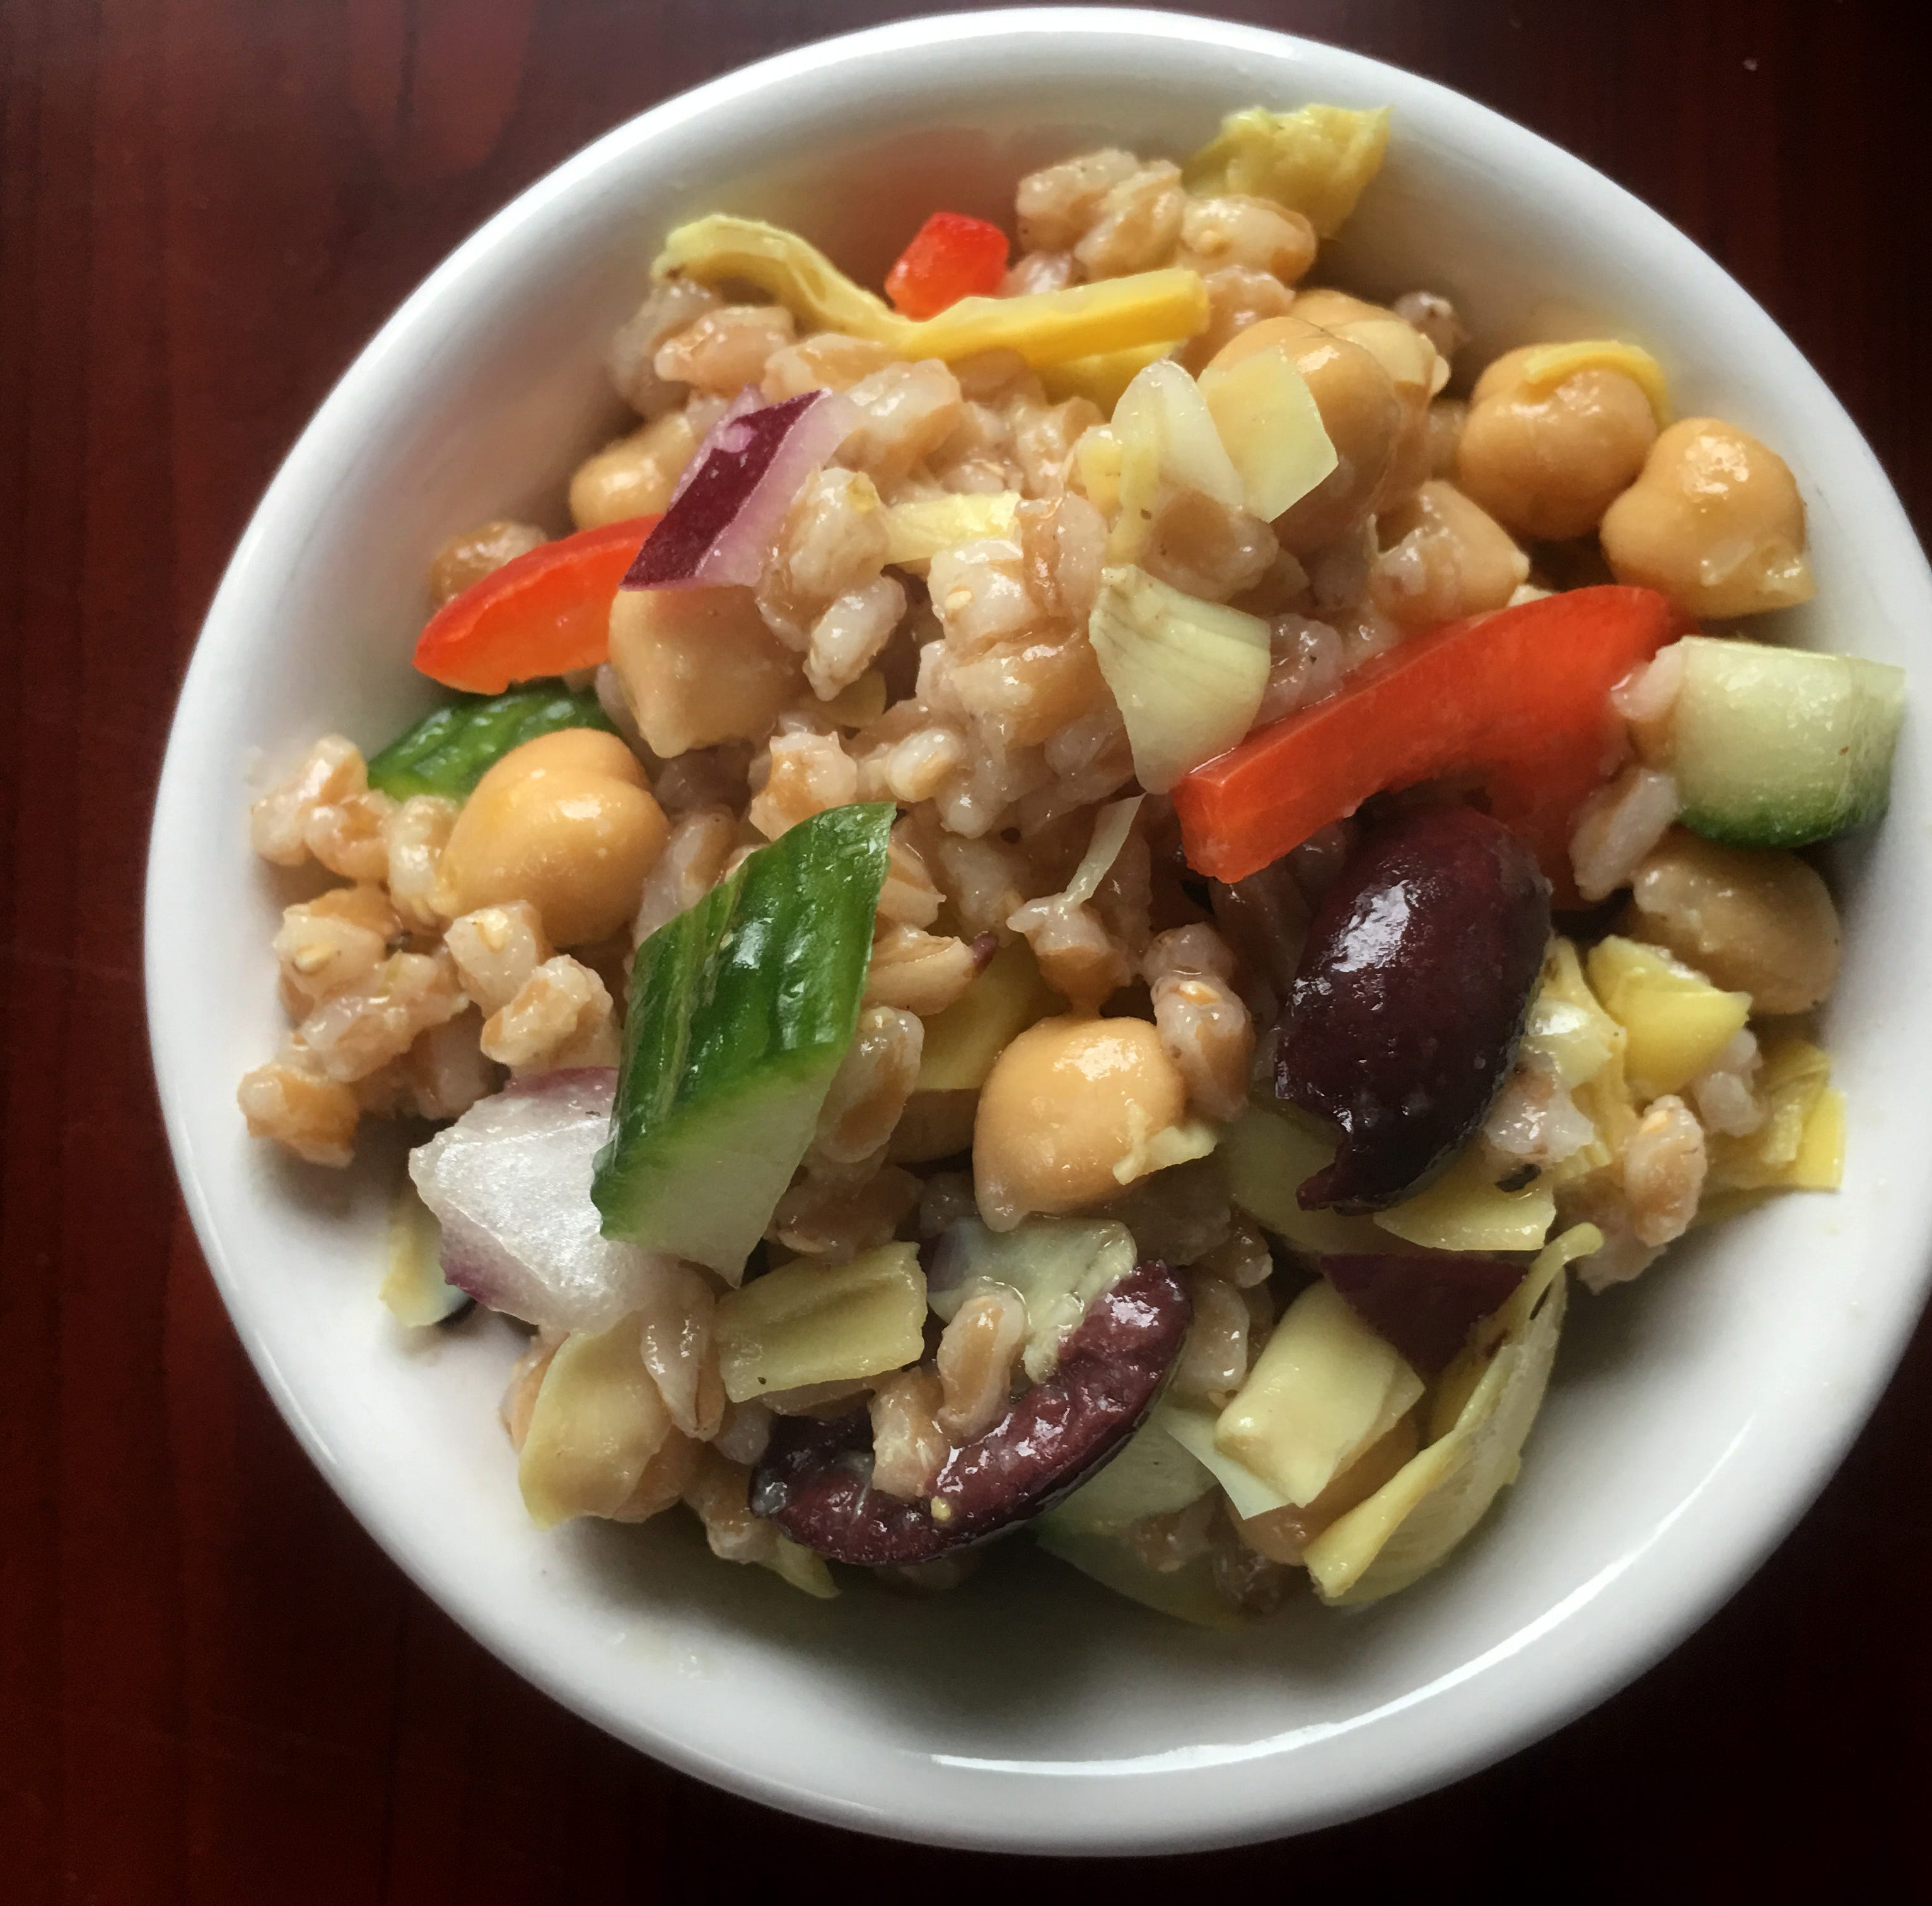 Salad made with wheat berries, veggies is an excellent source of fiber